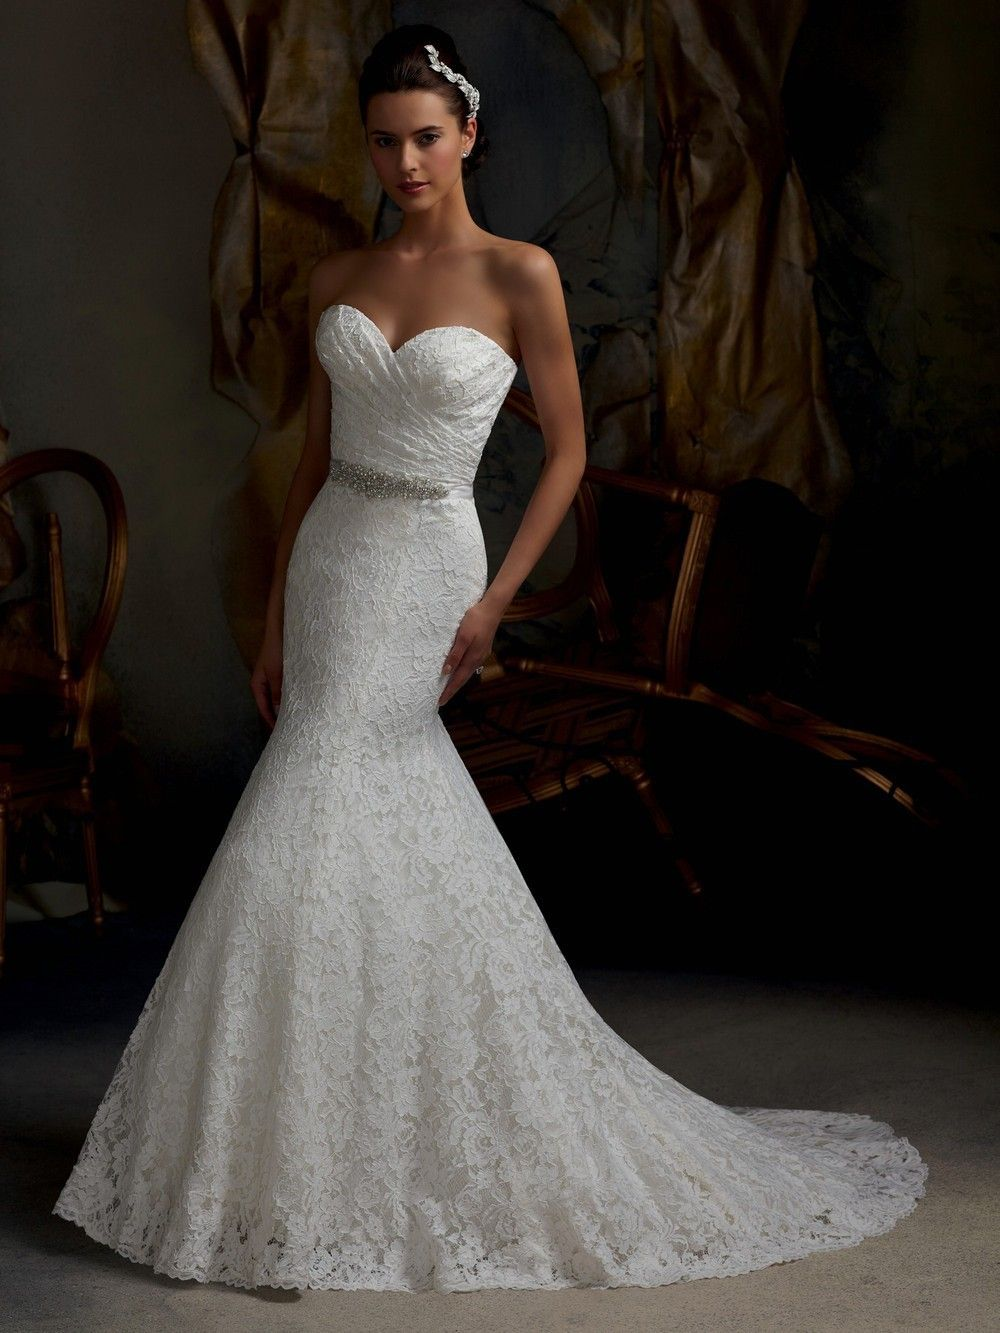 2013 Hot On Sale Custom Made Strapless Sweetheart Lace Bling Beading Front Split Lace Mermaid Wedding Dress Mermaid Trumpet Wedding Dresses Bridal Dresses Lace [ 1333 x 1000 Pixel ]